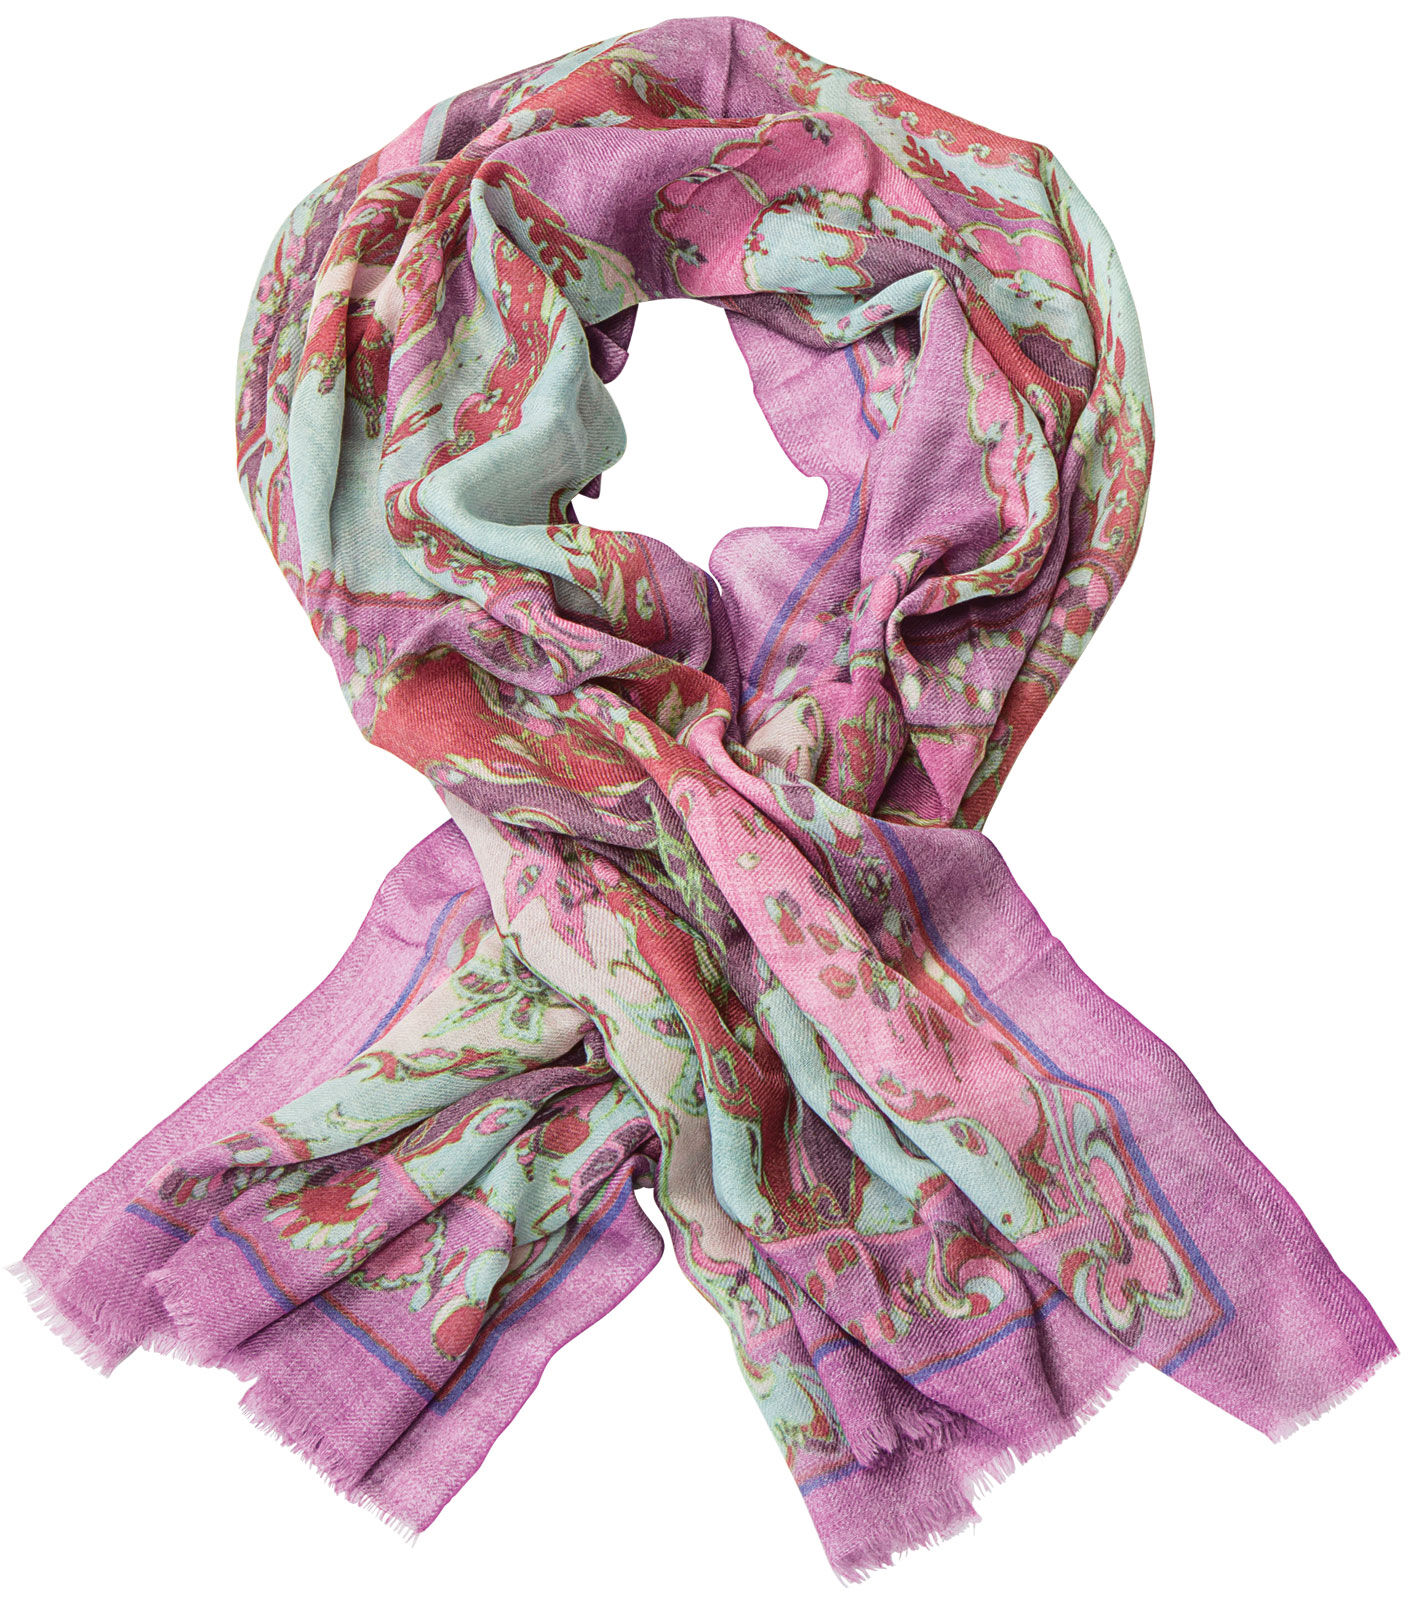 Wool Shawl Quot Pastel Quot Pure Wool Exclusive Limited